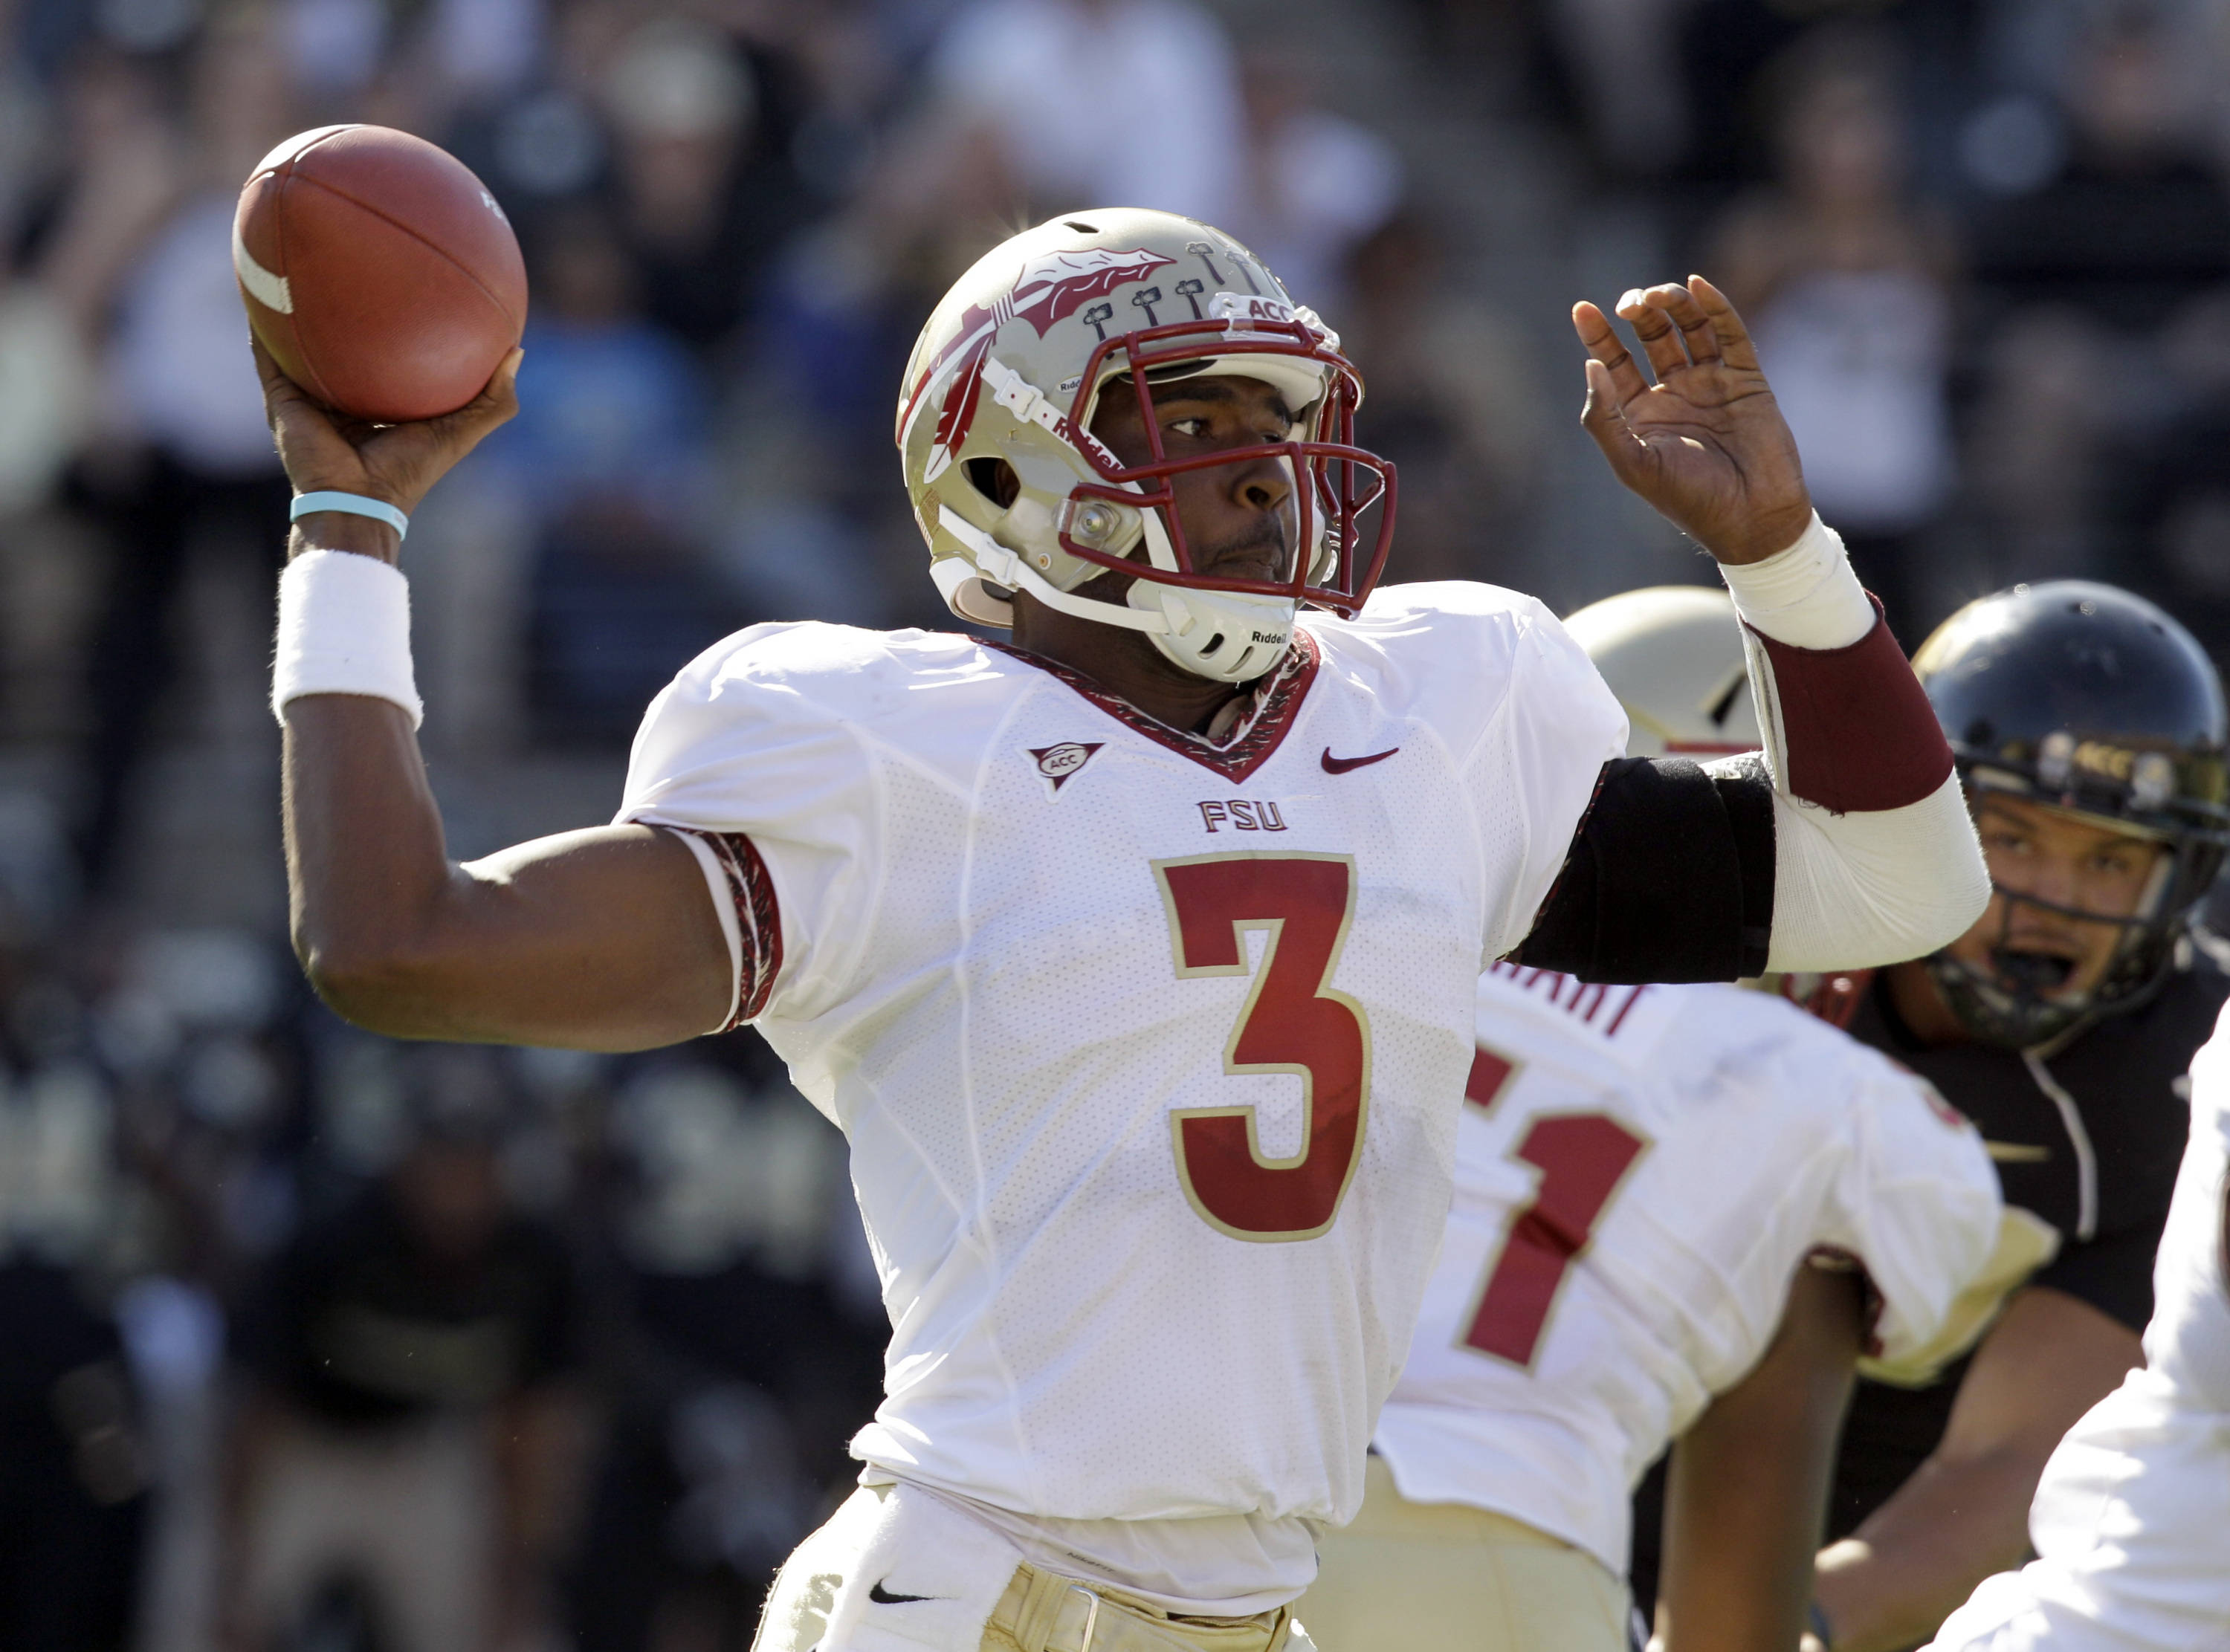 Florida State's EJ Manuel (3) throws a pass against the Wake Forest. (AP Photo/Chuck Burton)